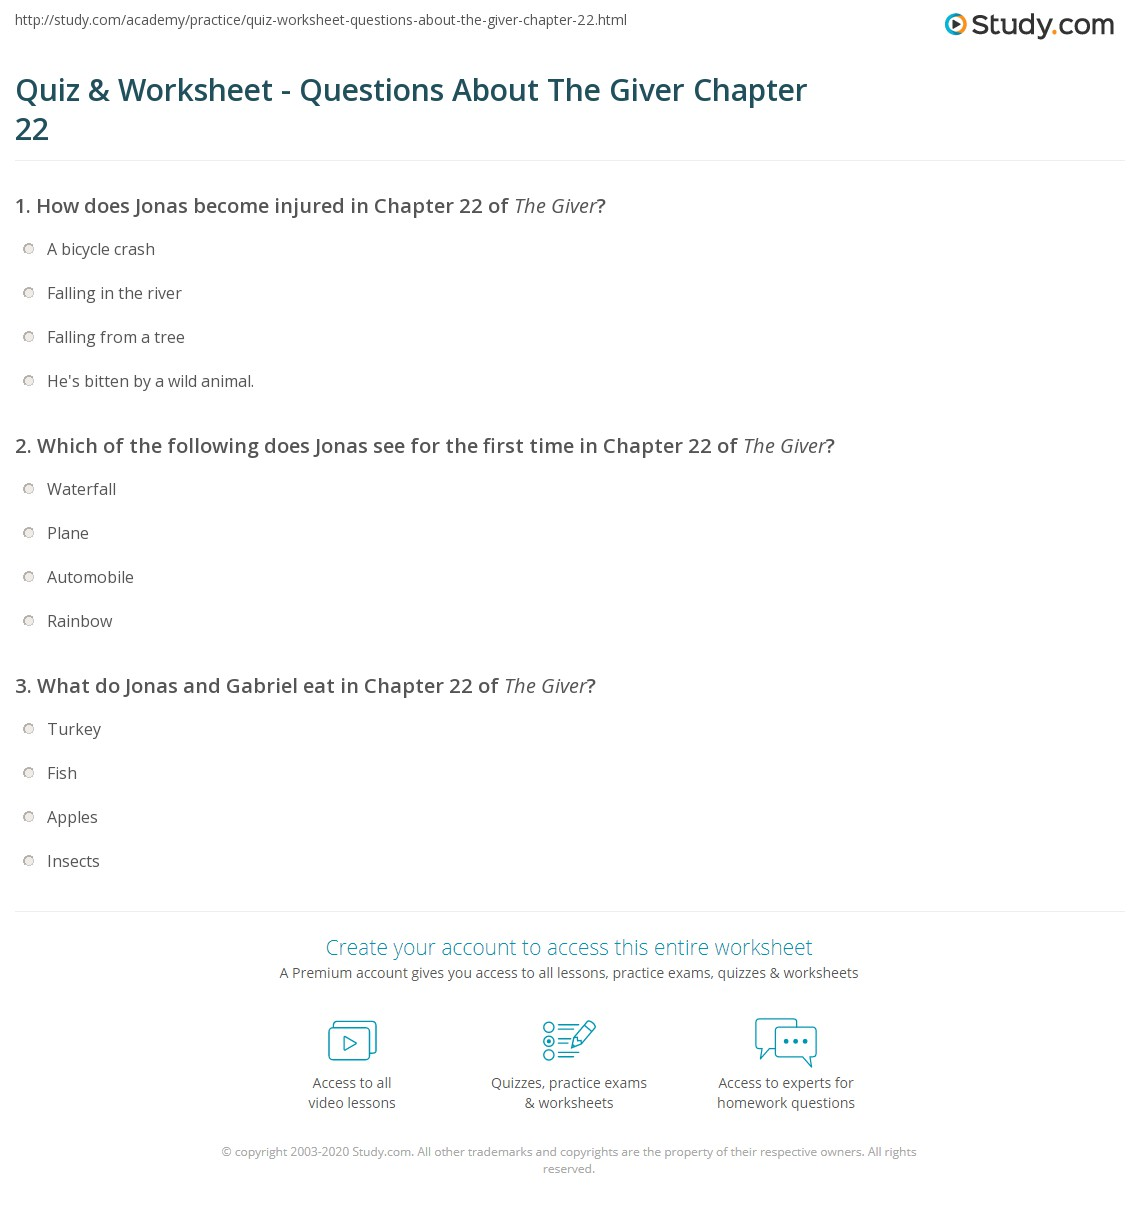 Print The Giver Chapter 22 Summary & Quotes Worksheet